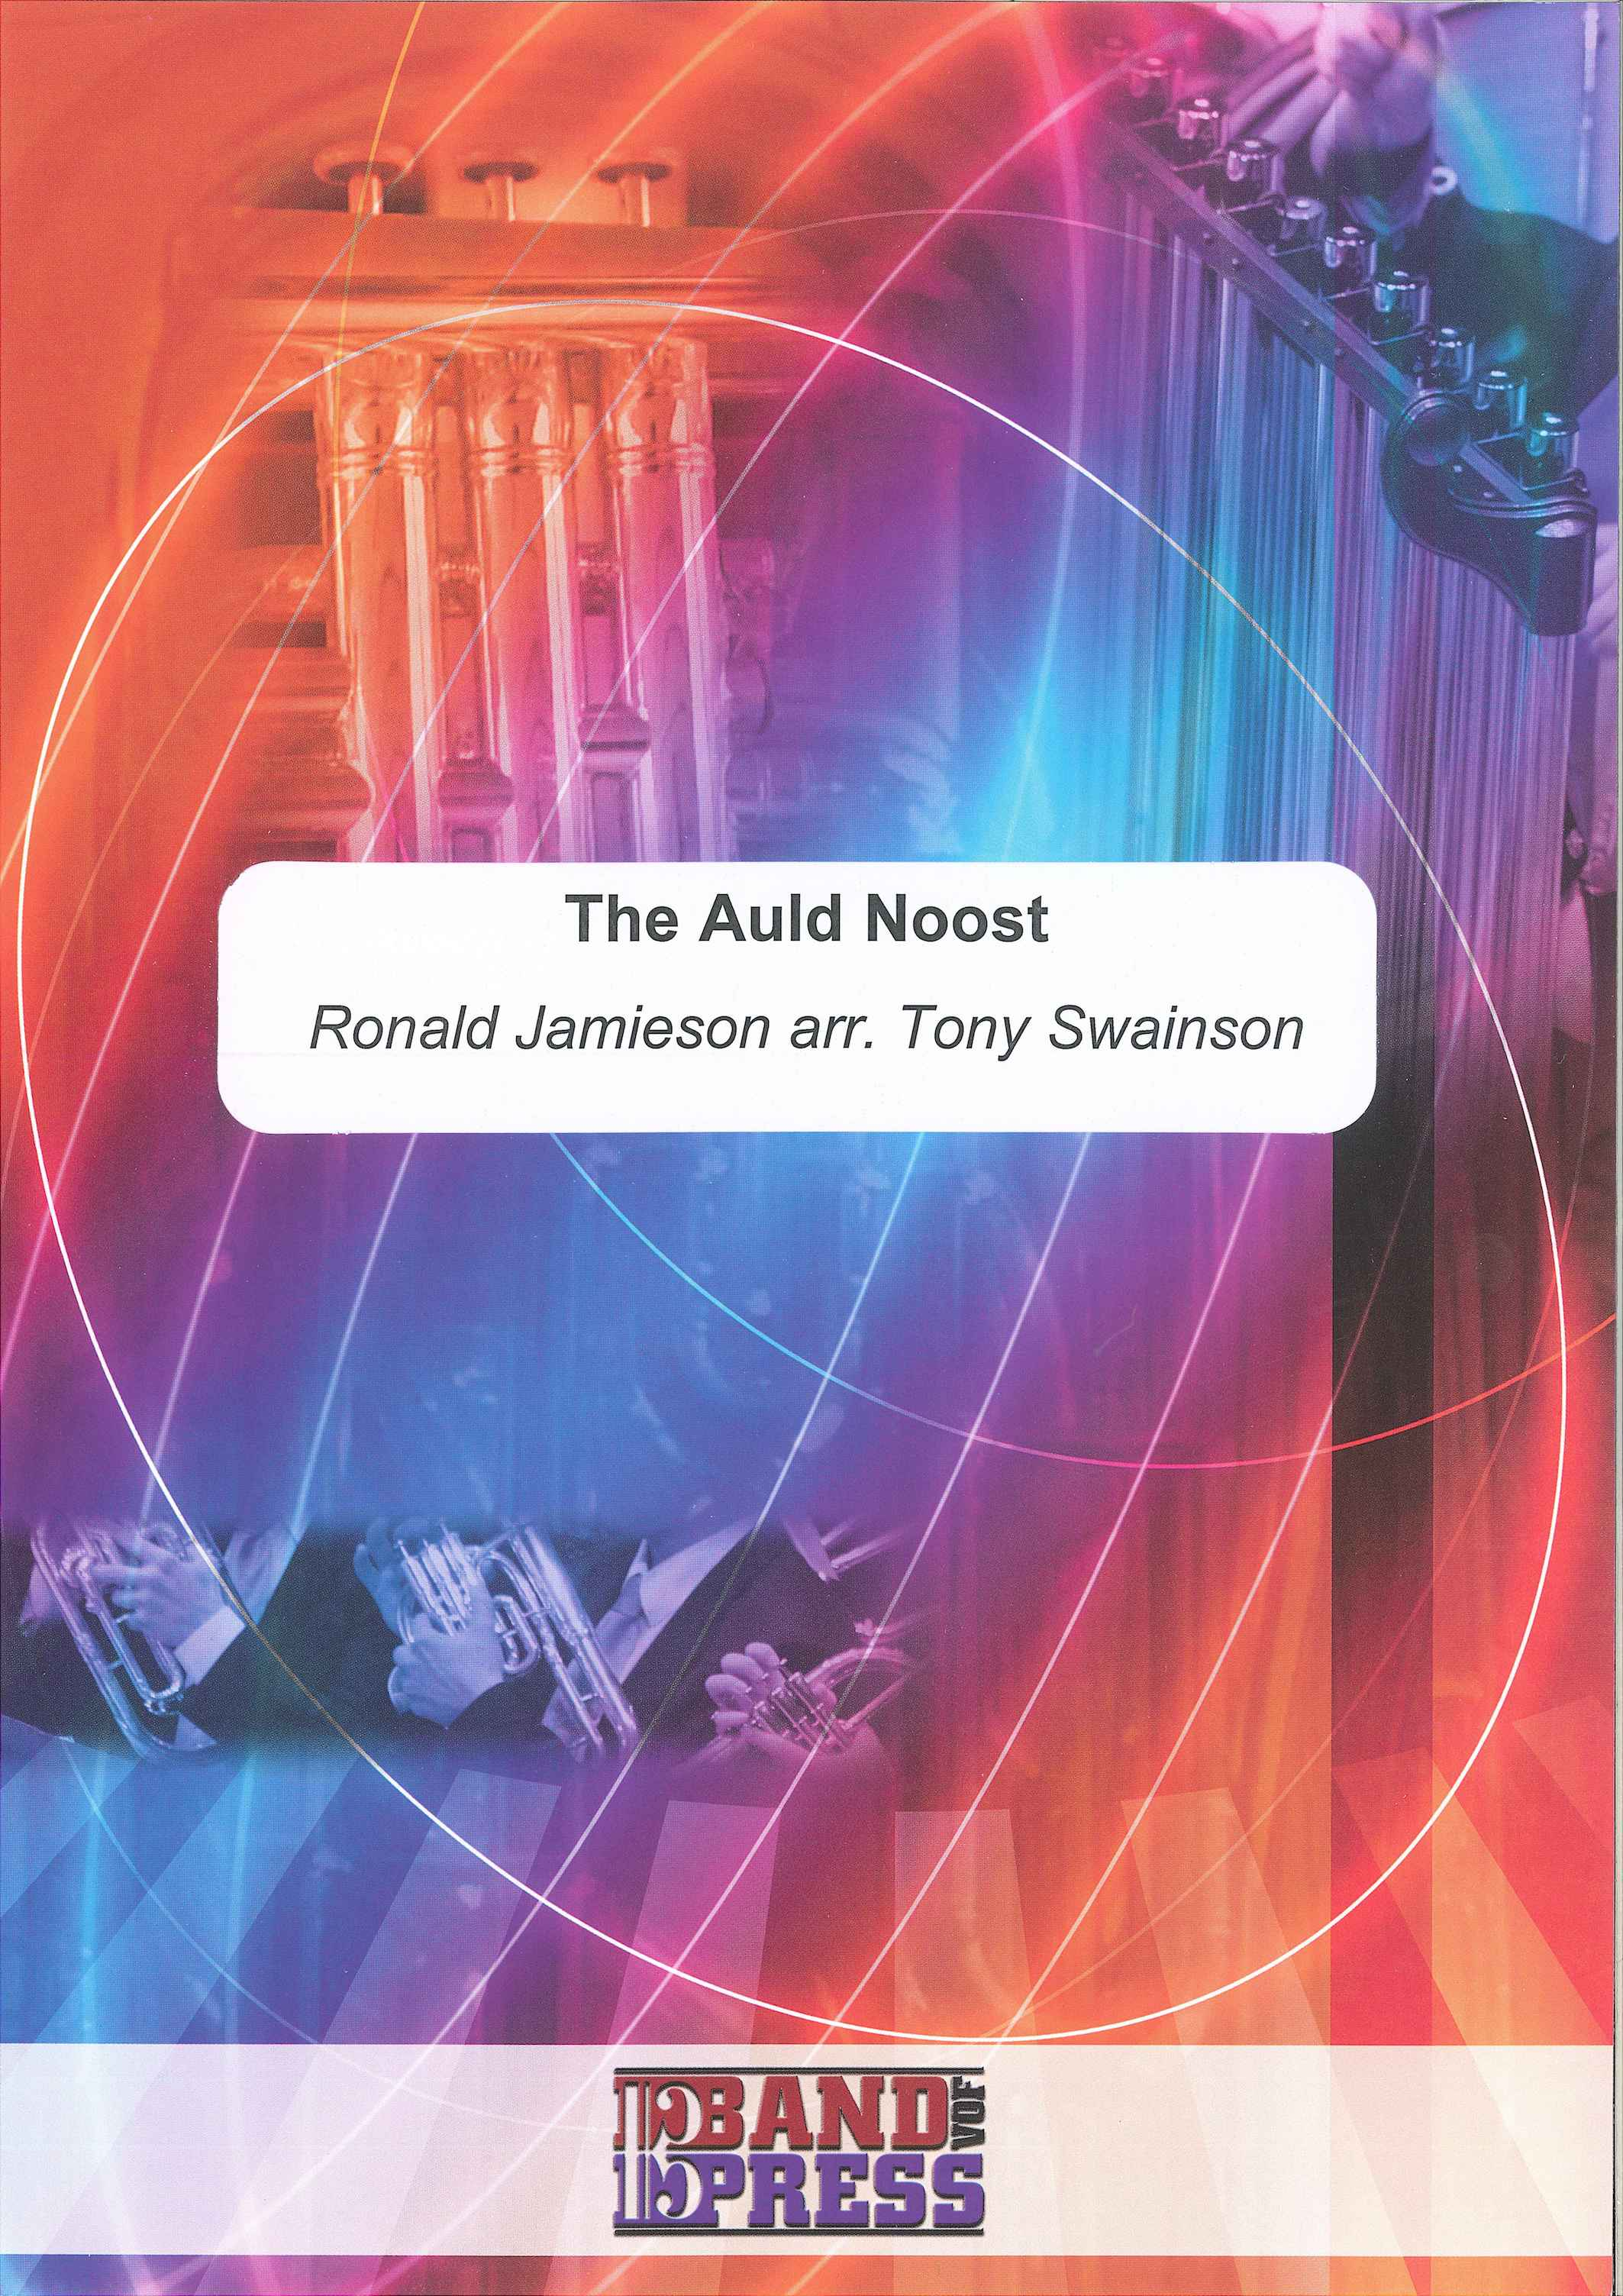 The Auld Noost - Ronald Jamieson Arr. Tony Swainson - Euph and Piano